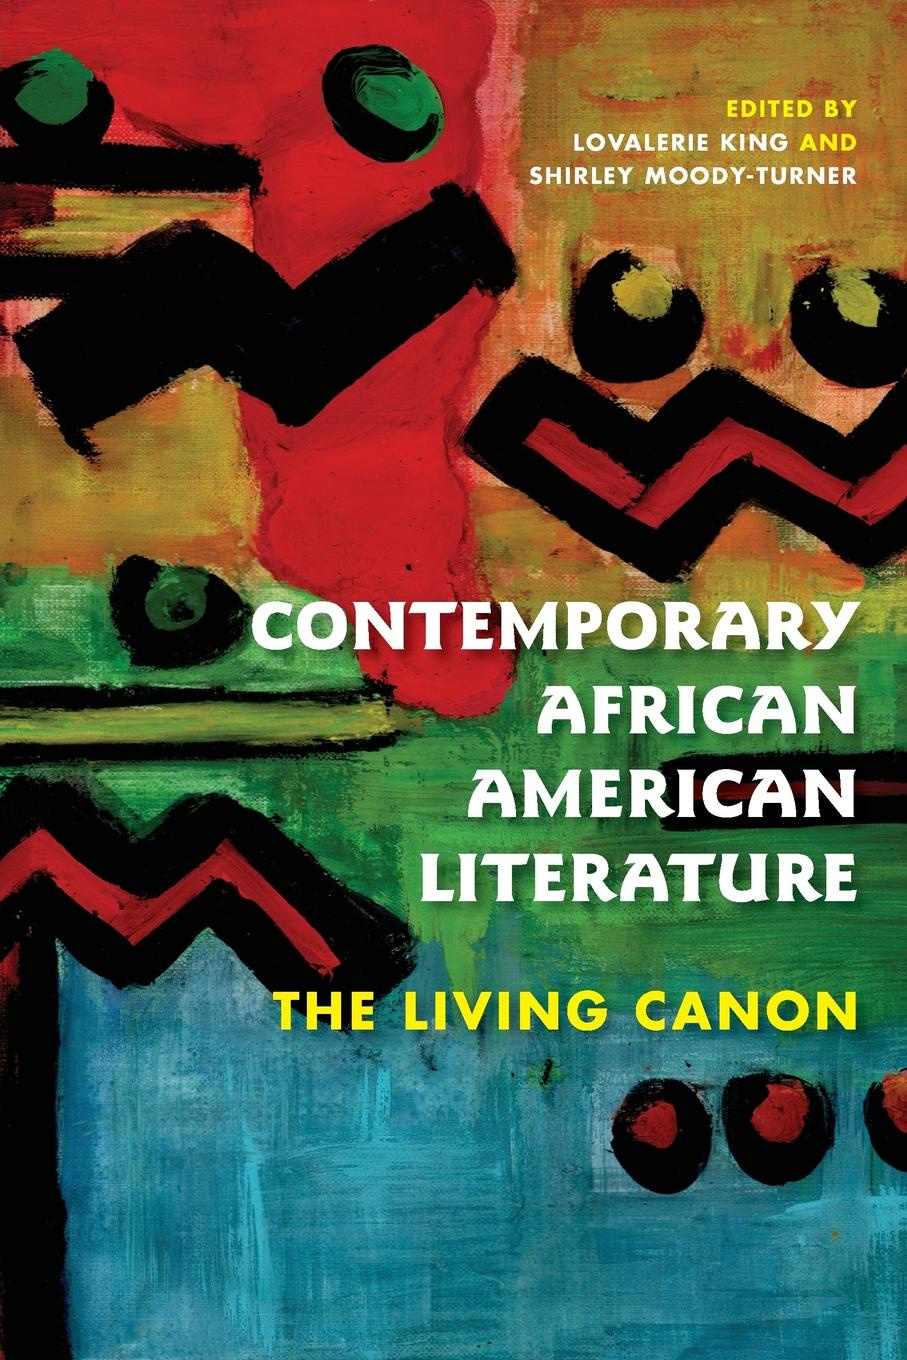 Contemporary African American Literature. The Living Canon